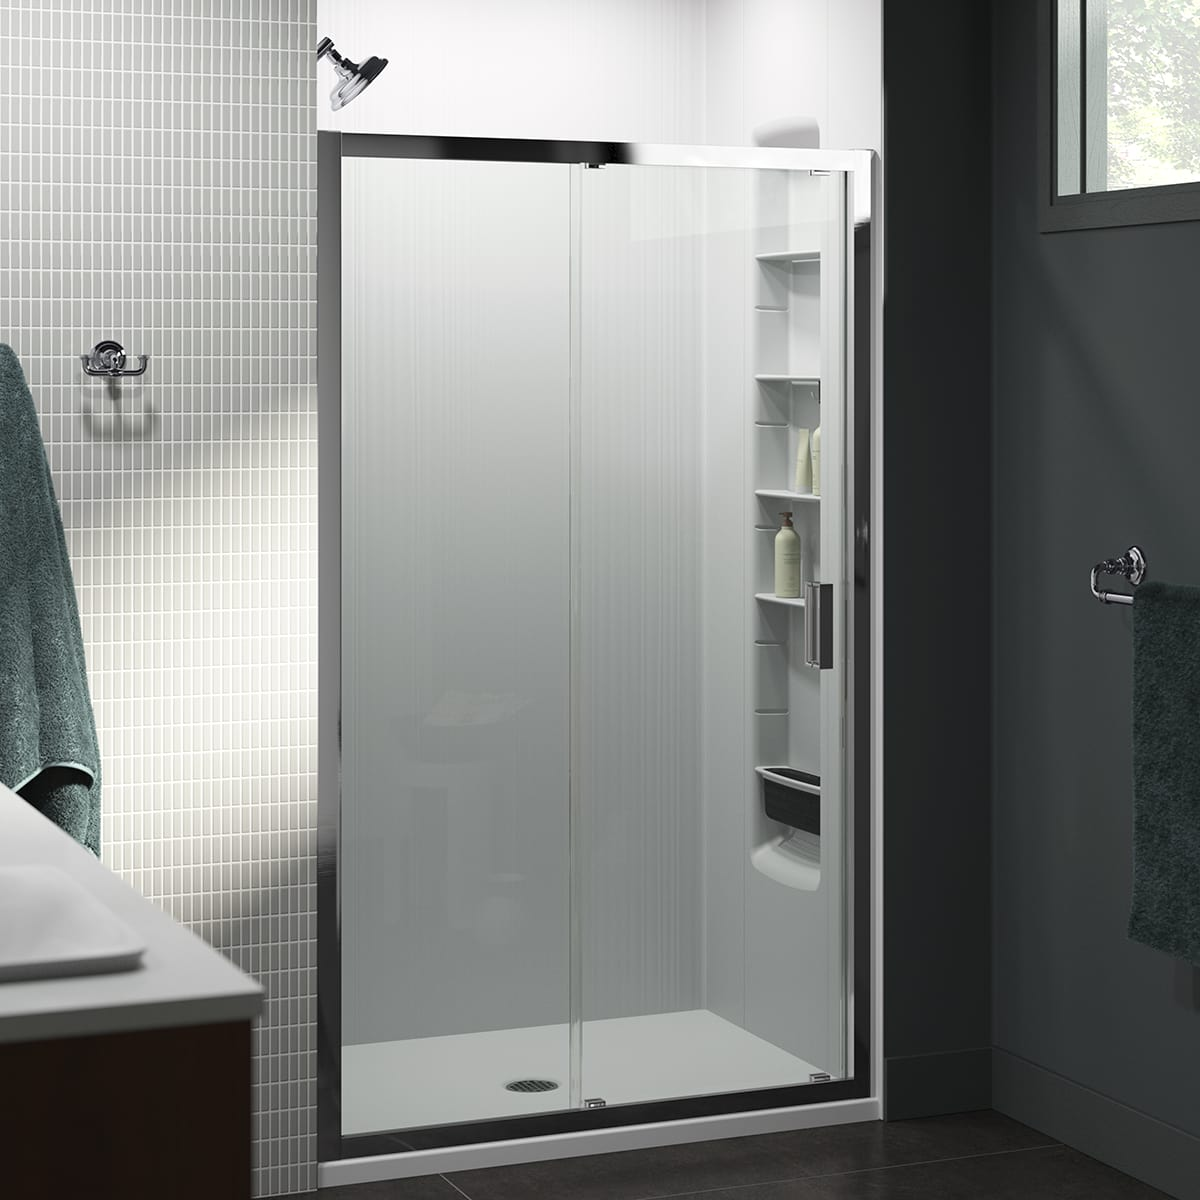 Kohler K 706145 L Shp Bright Polished Silver Aerie 48 Three Wall